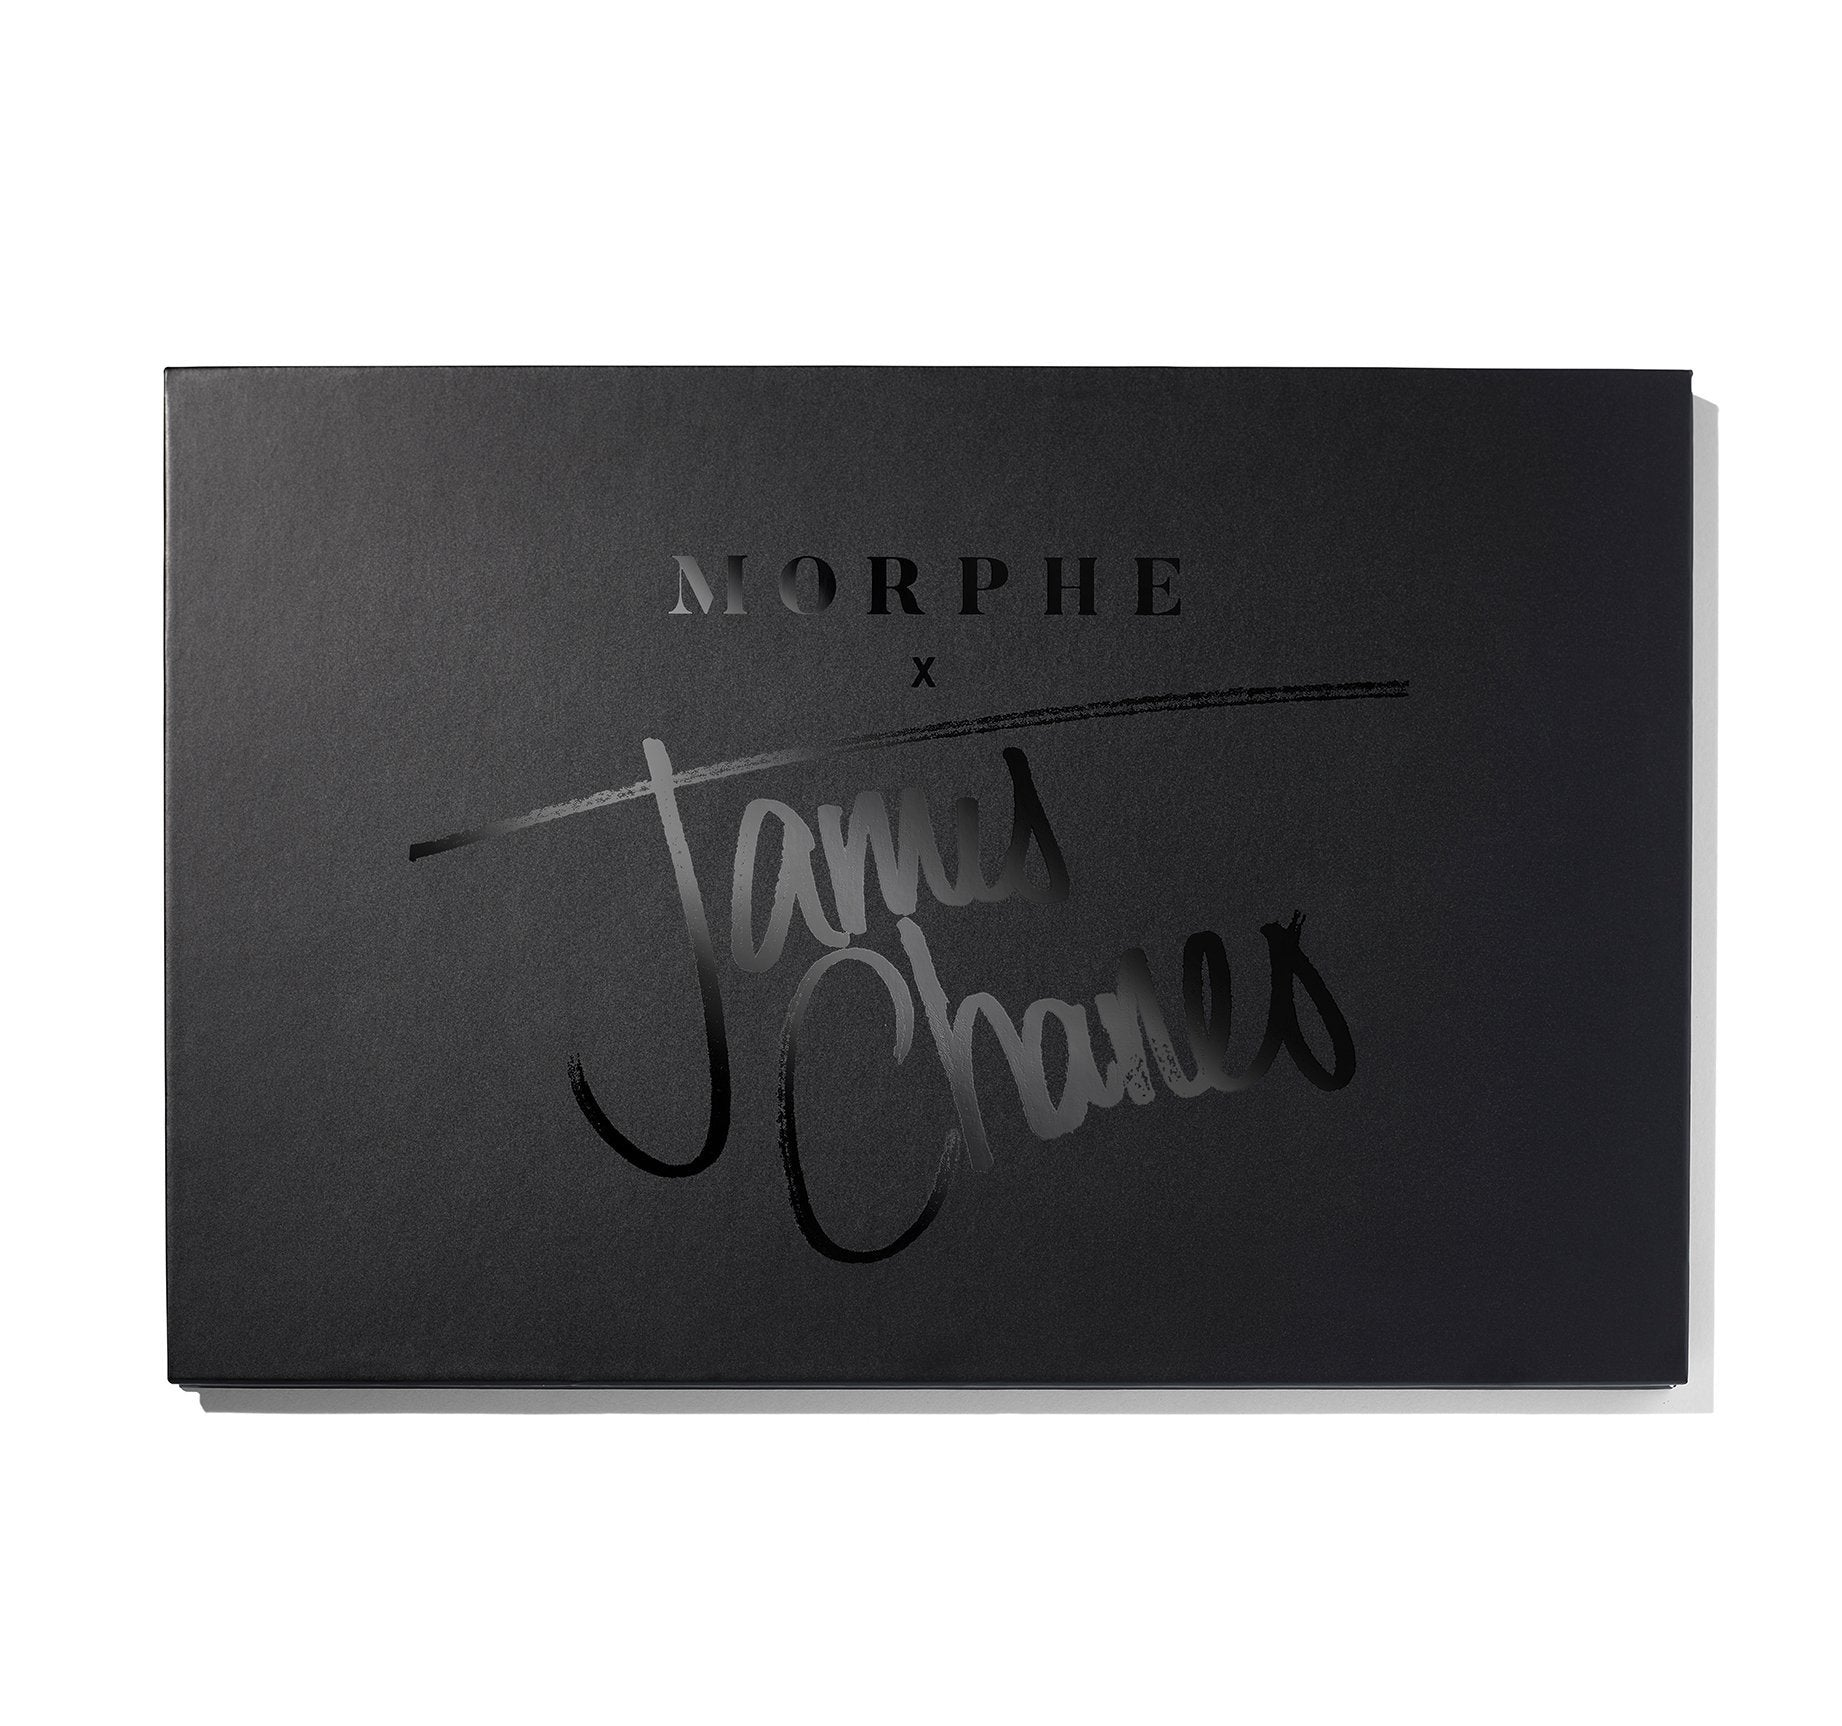 THE JAMES CHARLES PALETTE PACKAGING, view larger image